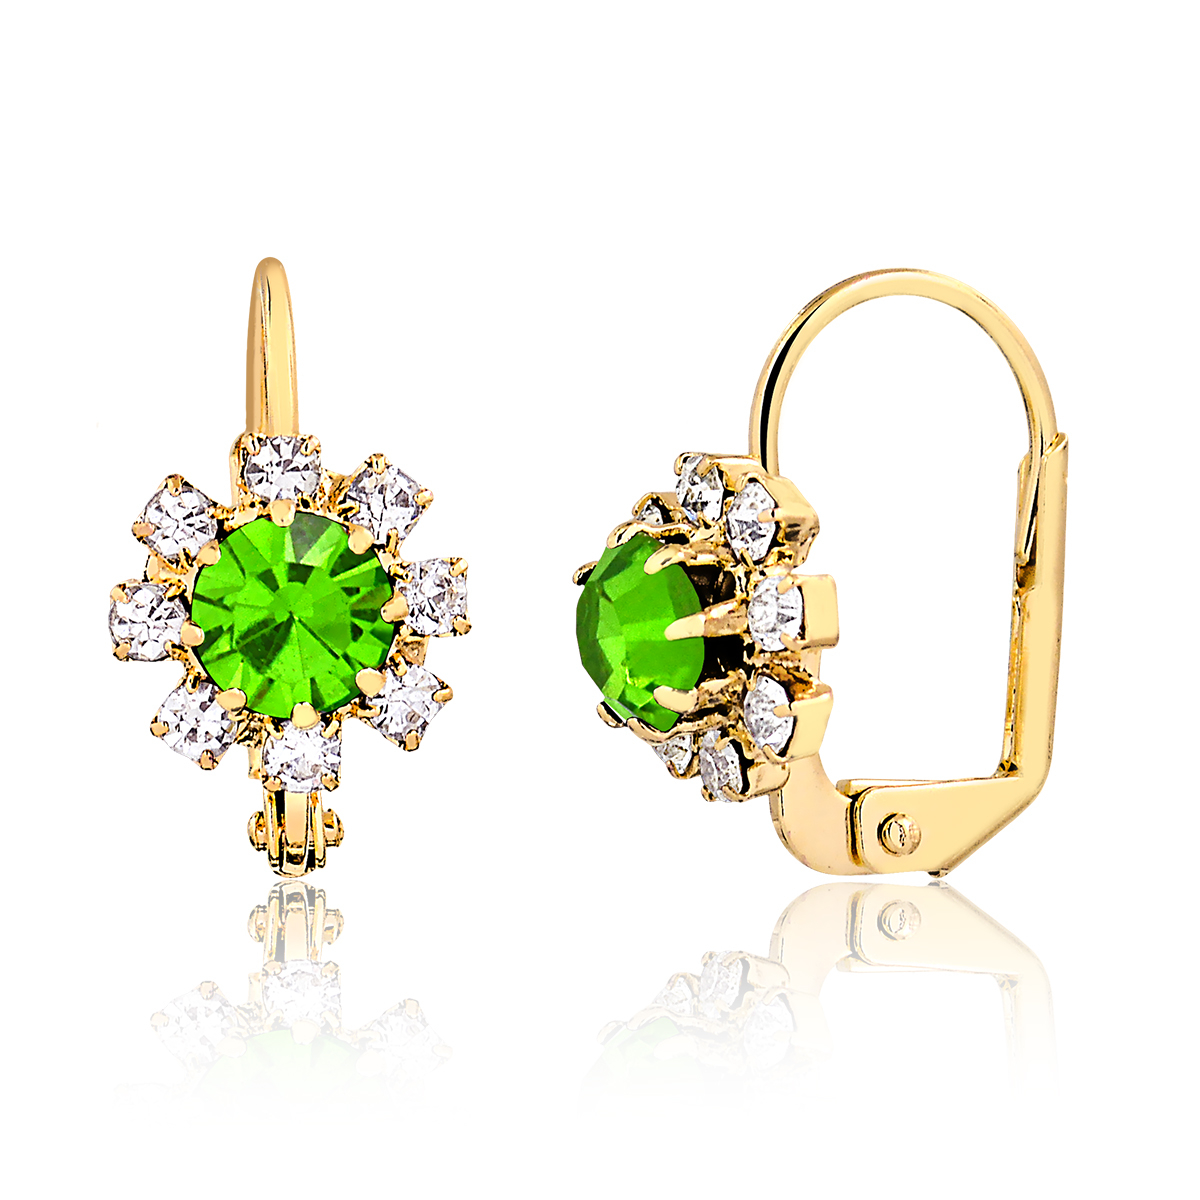 18k Gold Plated Olivine and Clear Crystal Flower Huggie Earrings Er127-08 596ce2582b59ca4df05ed786